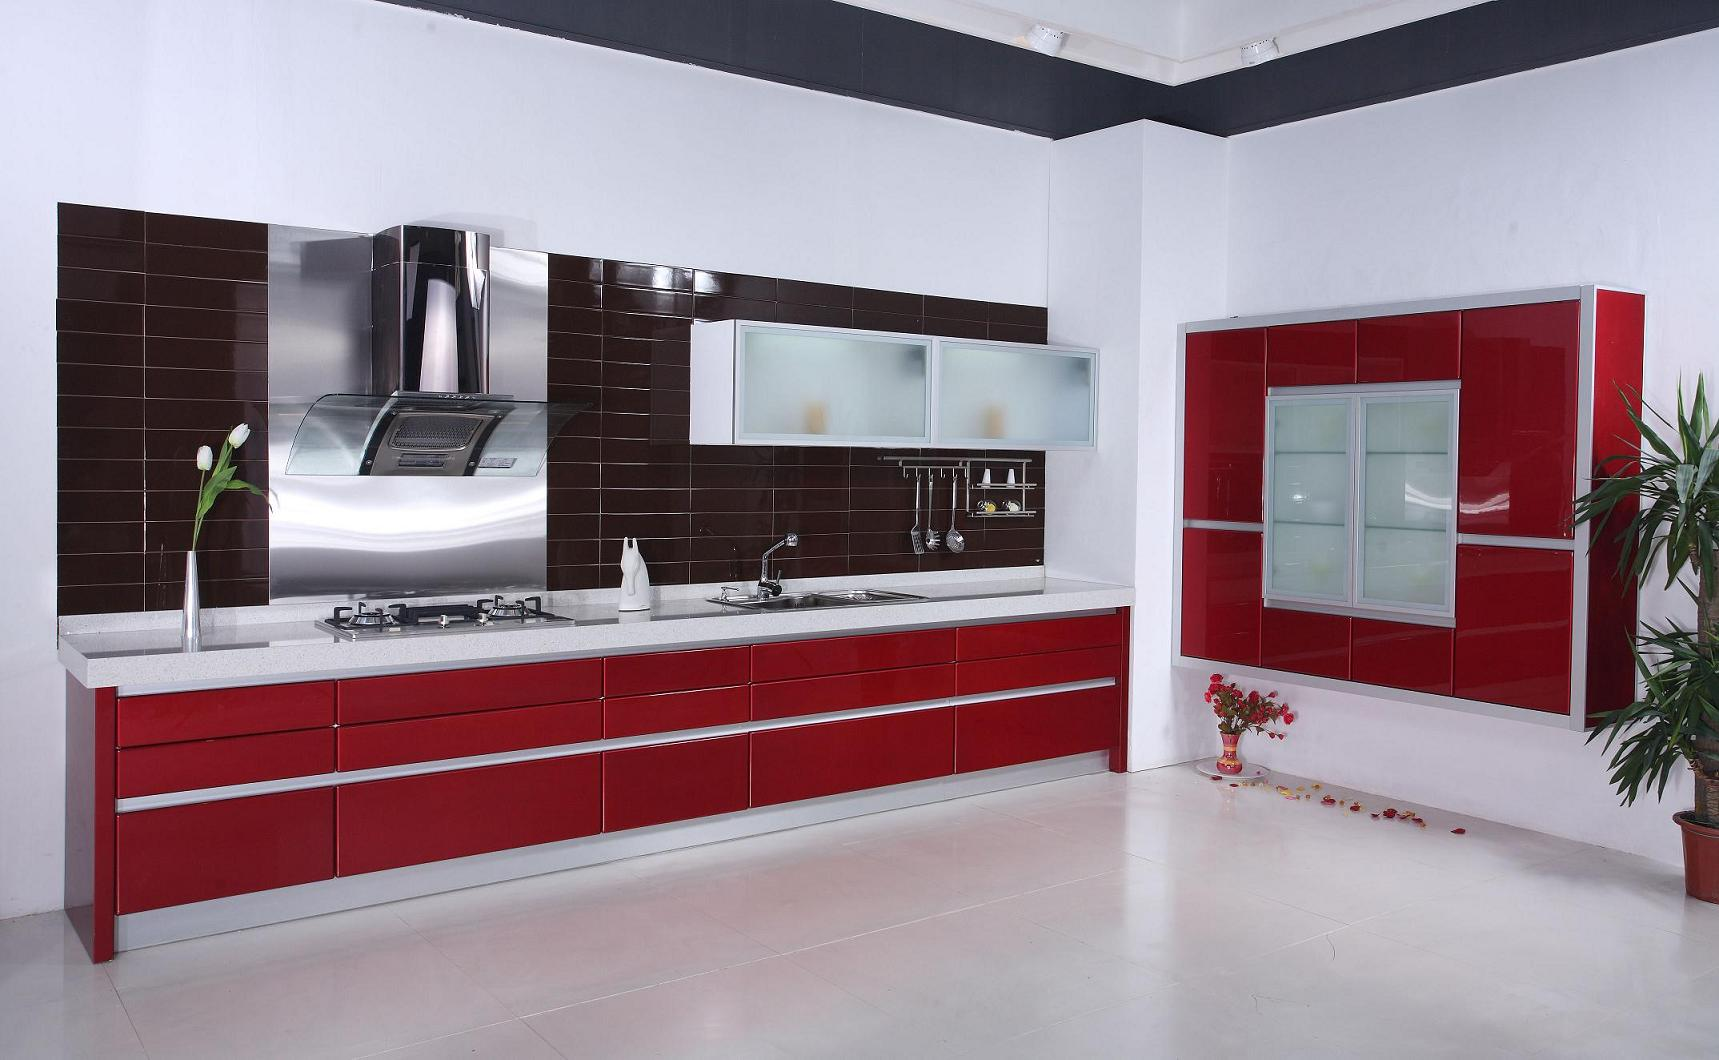 Modern Kitchen Cabinet Design Ideas | EiXei Home Improvement